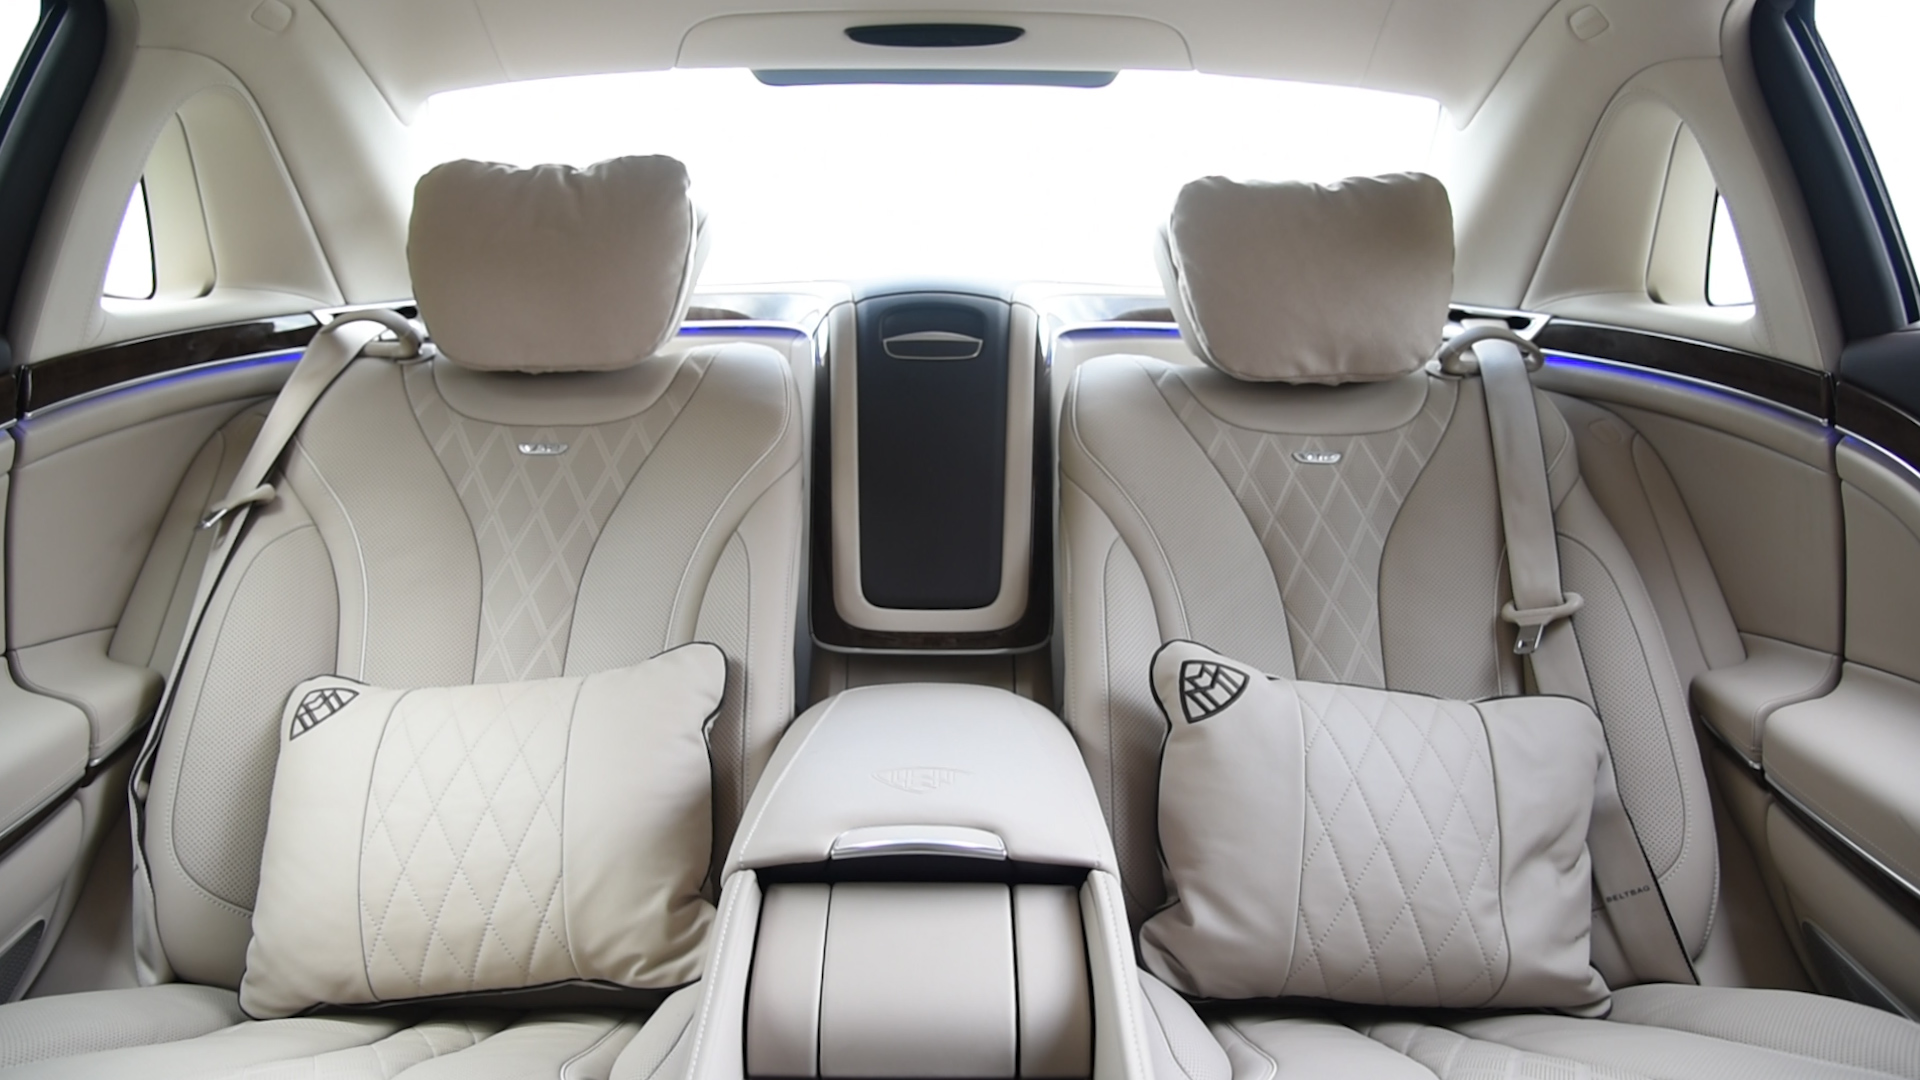 2016 mercedes maybach s600 interior 02